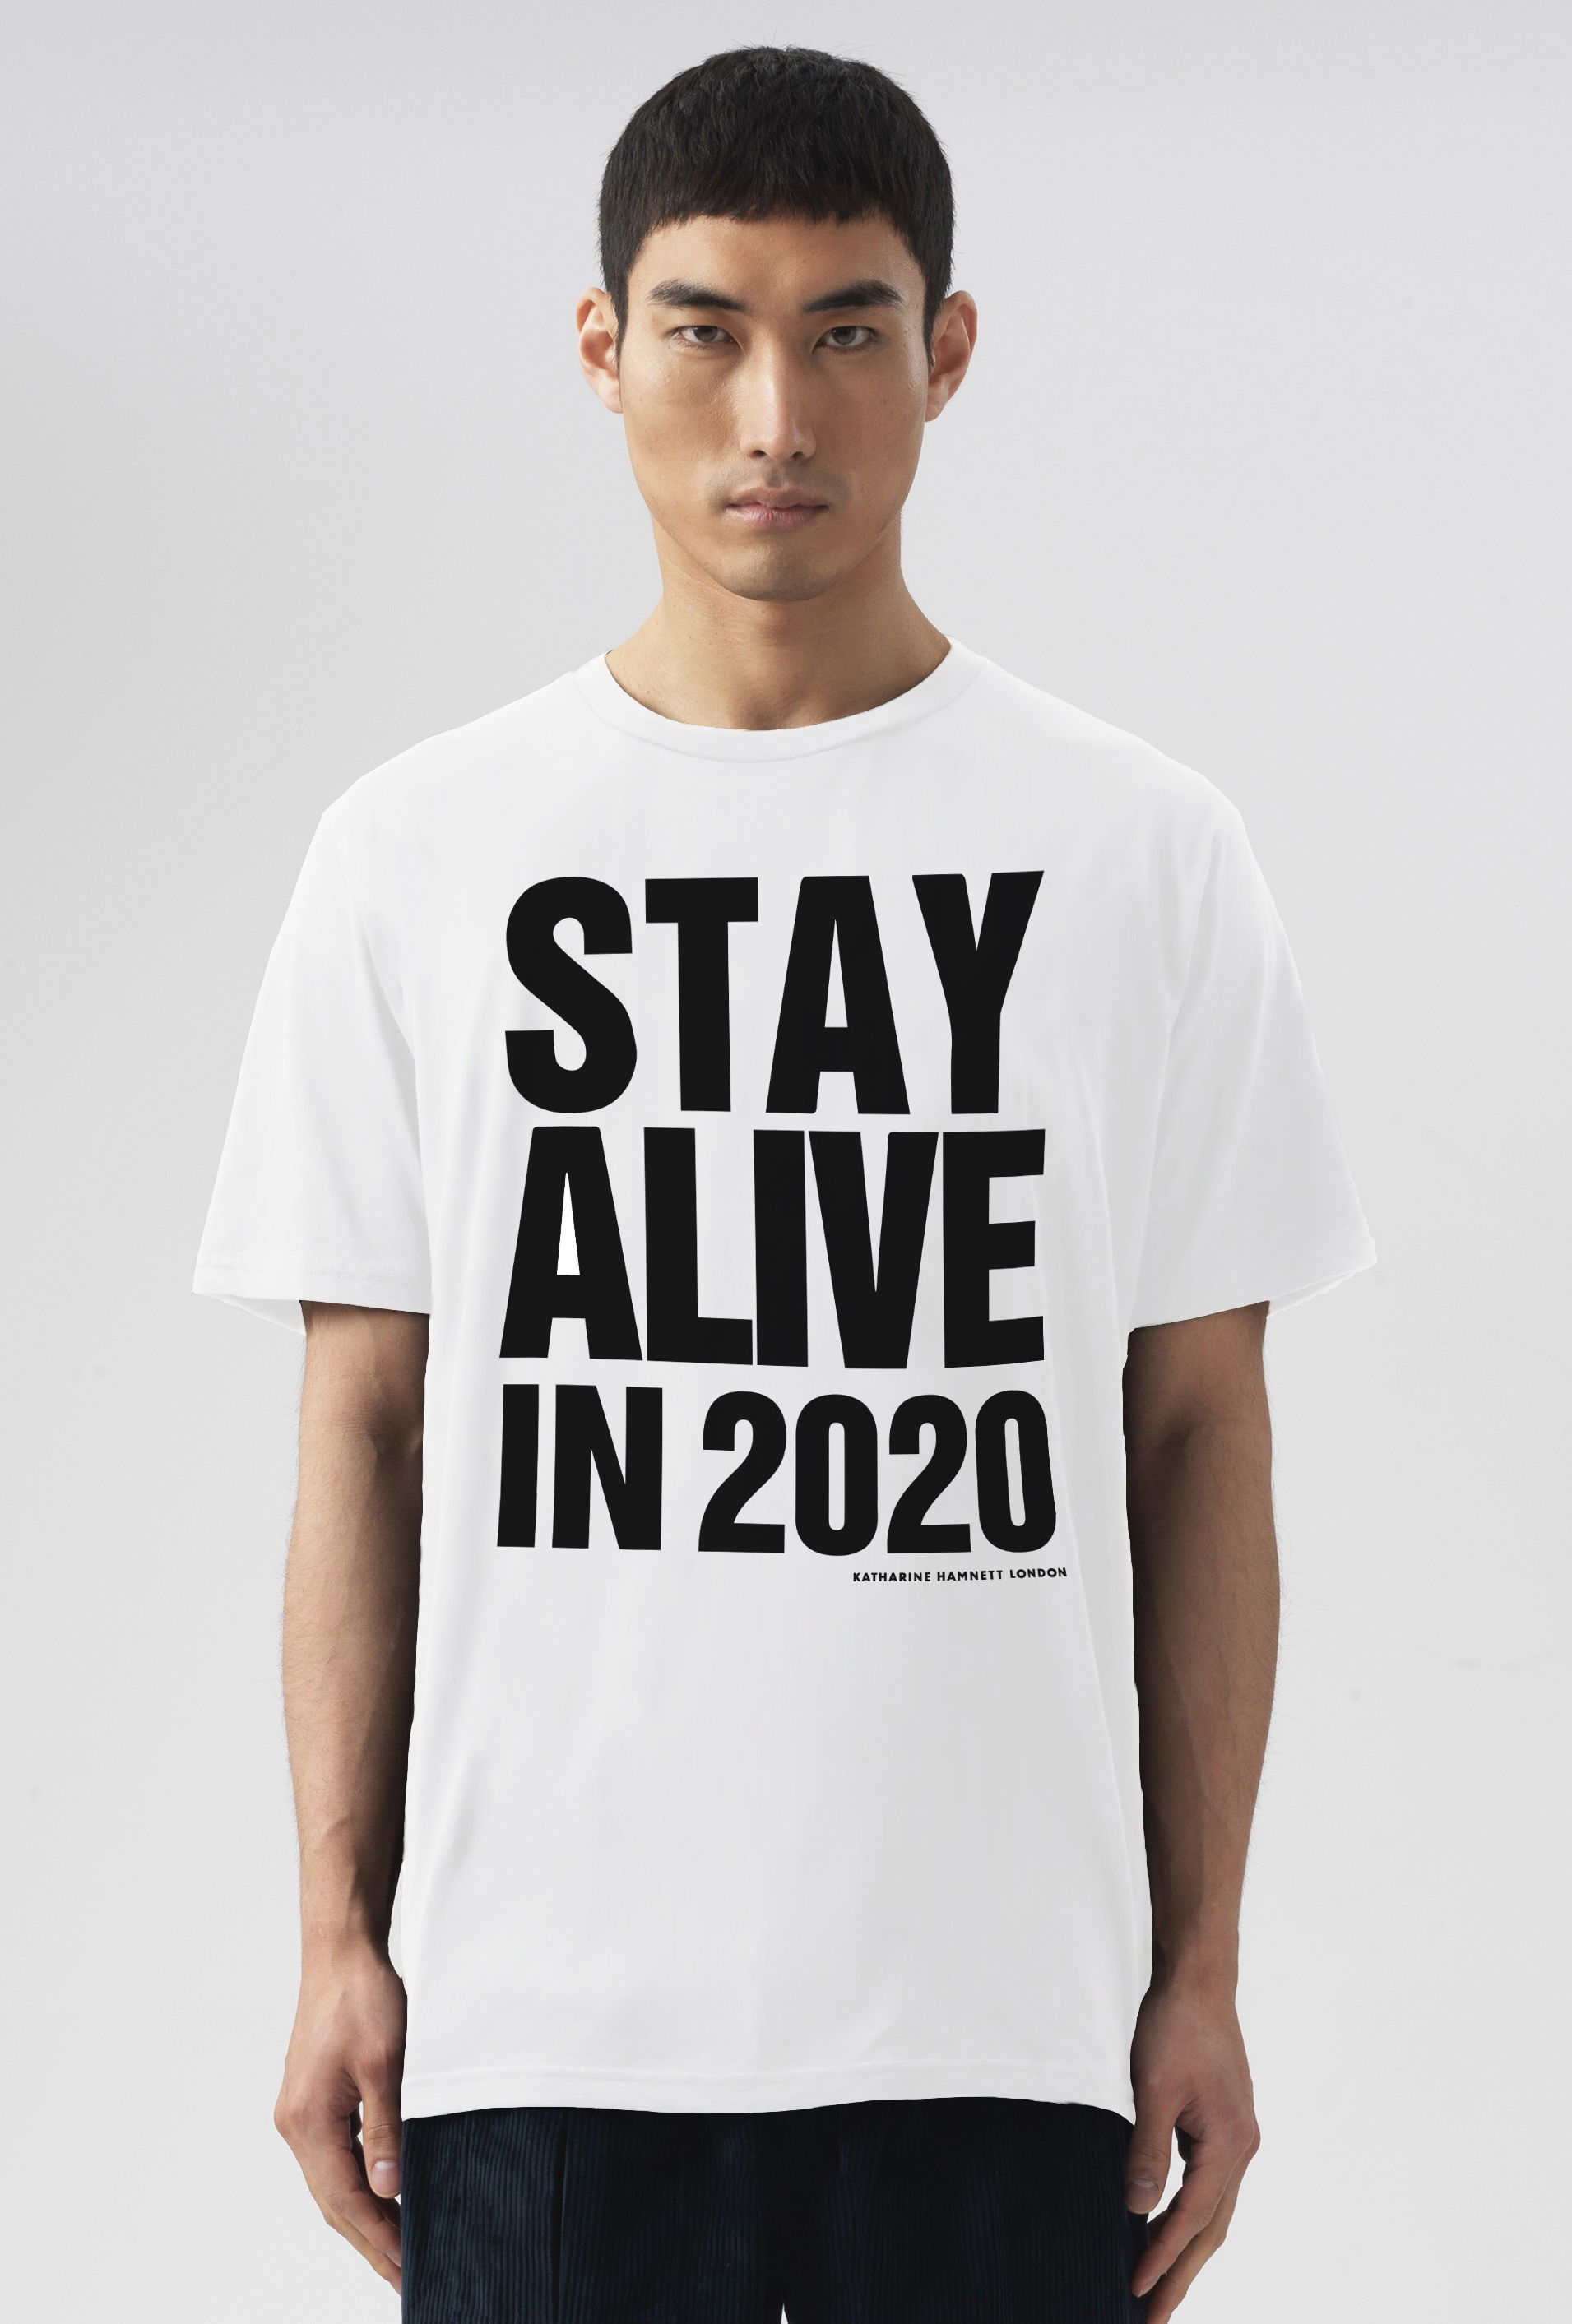 Stay Alive In 2020 Short Sleeve T-Shirt